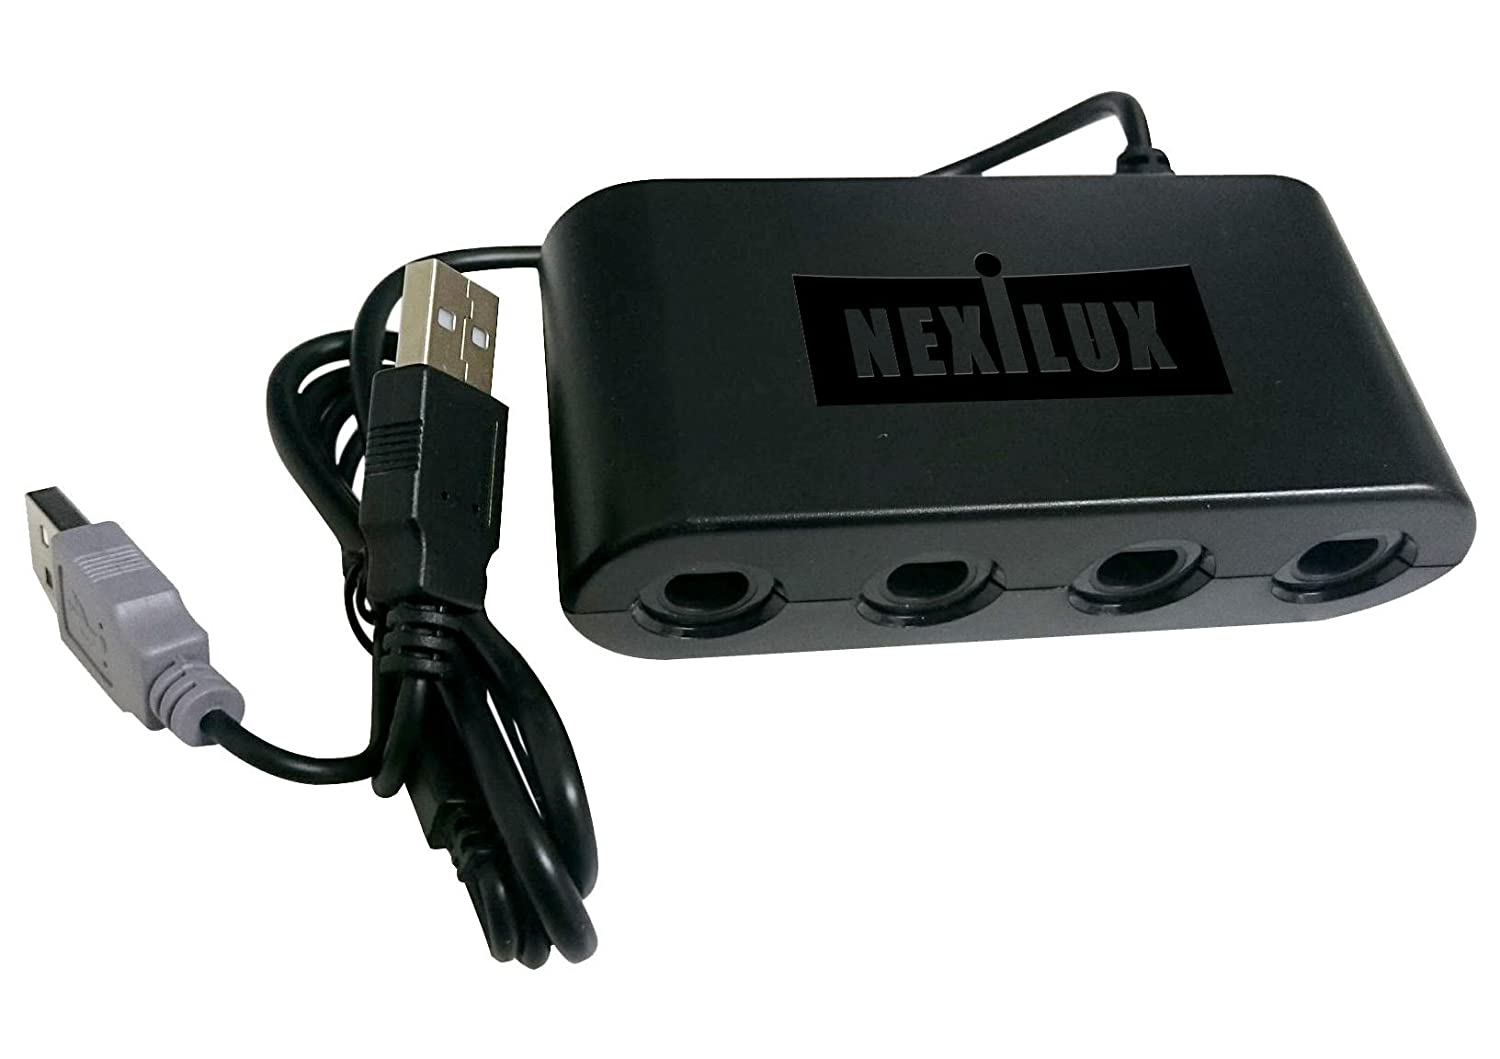 GameCube Controller Adapter for Wii U,PC USB & Switch - NEXiLUX